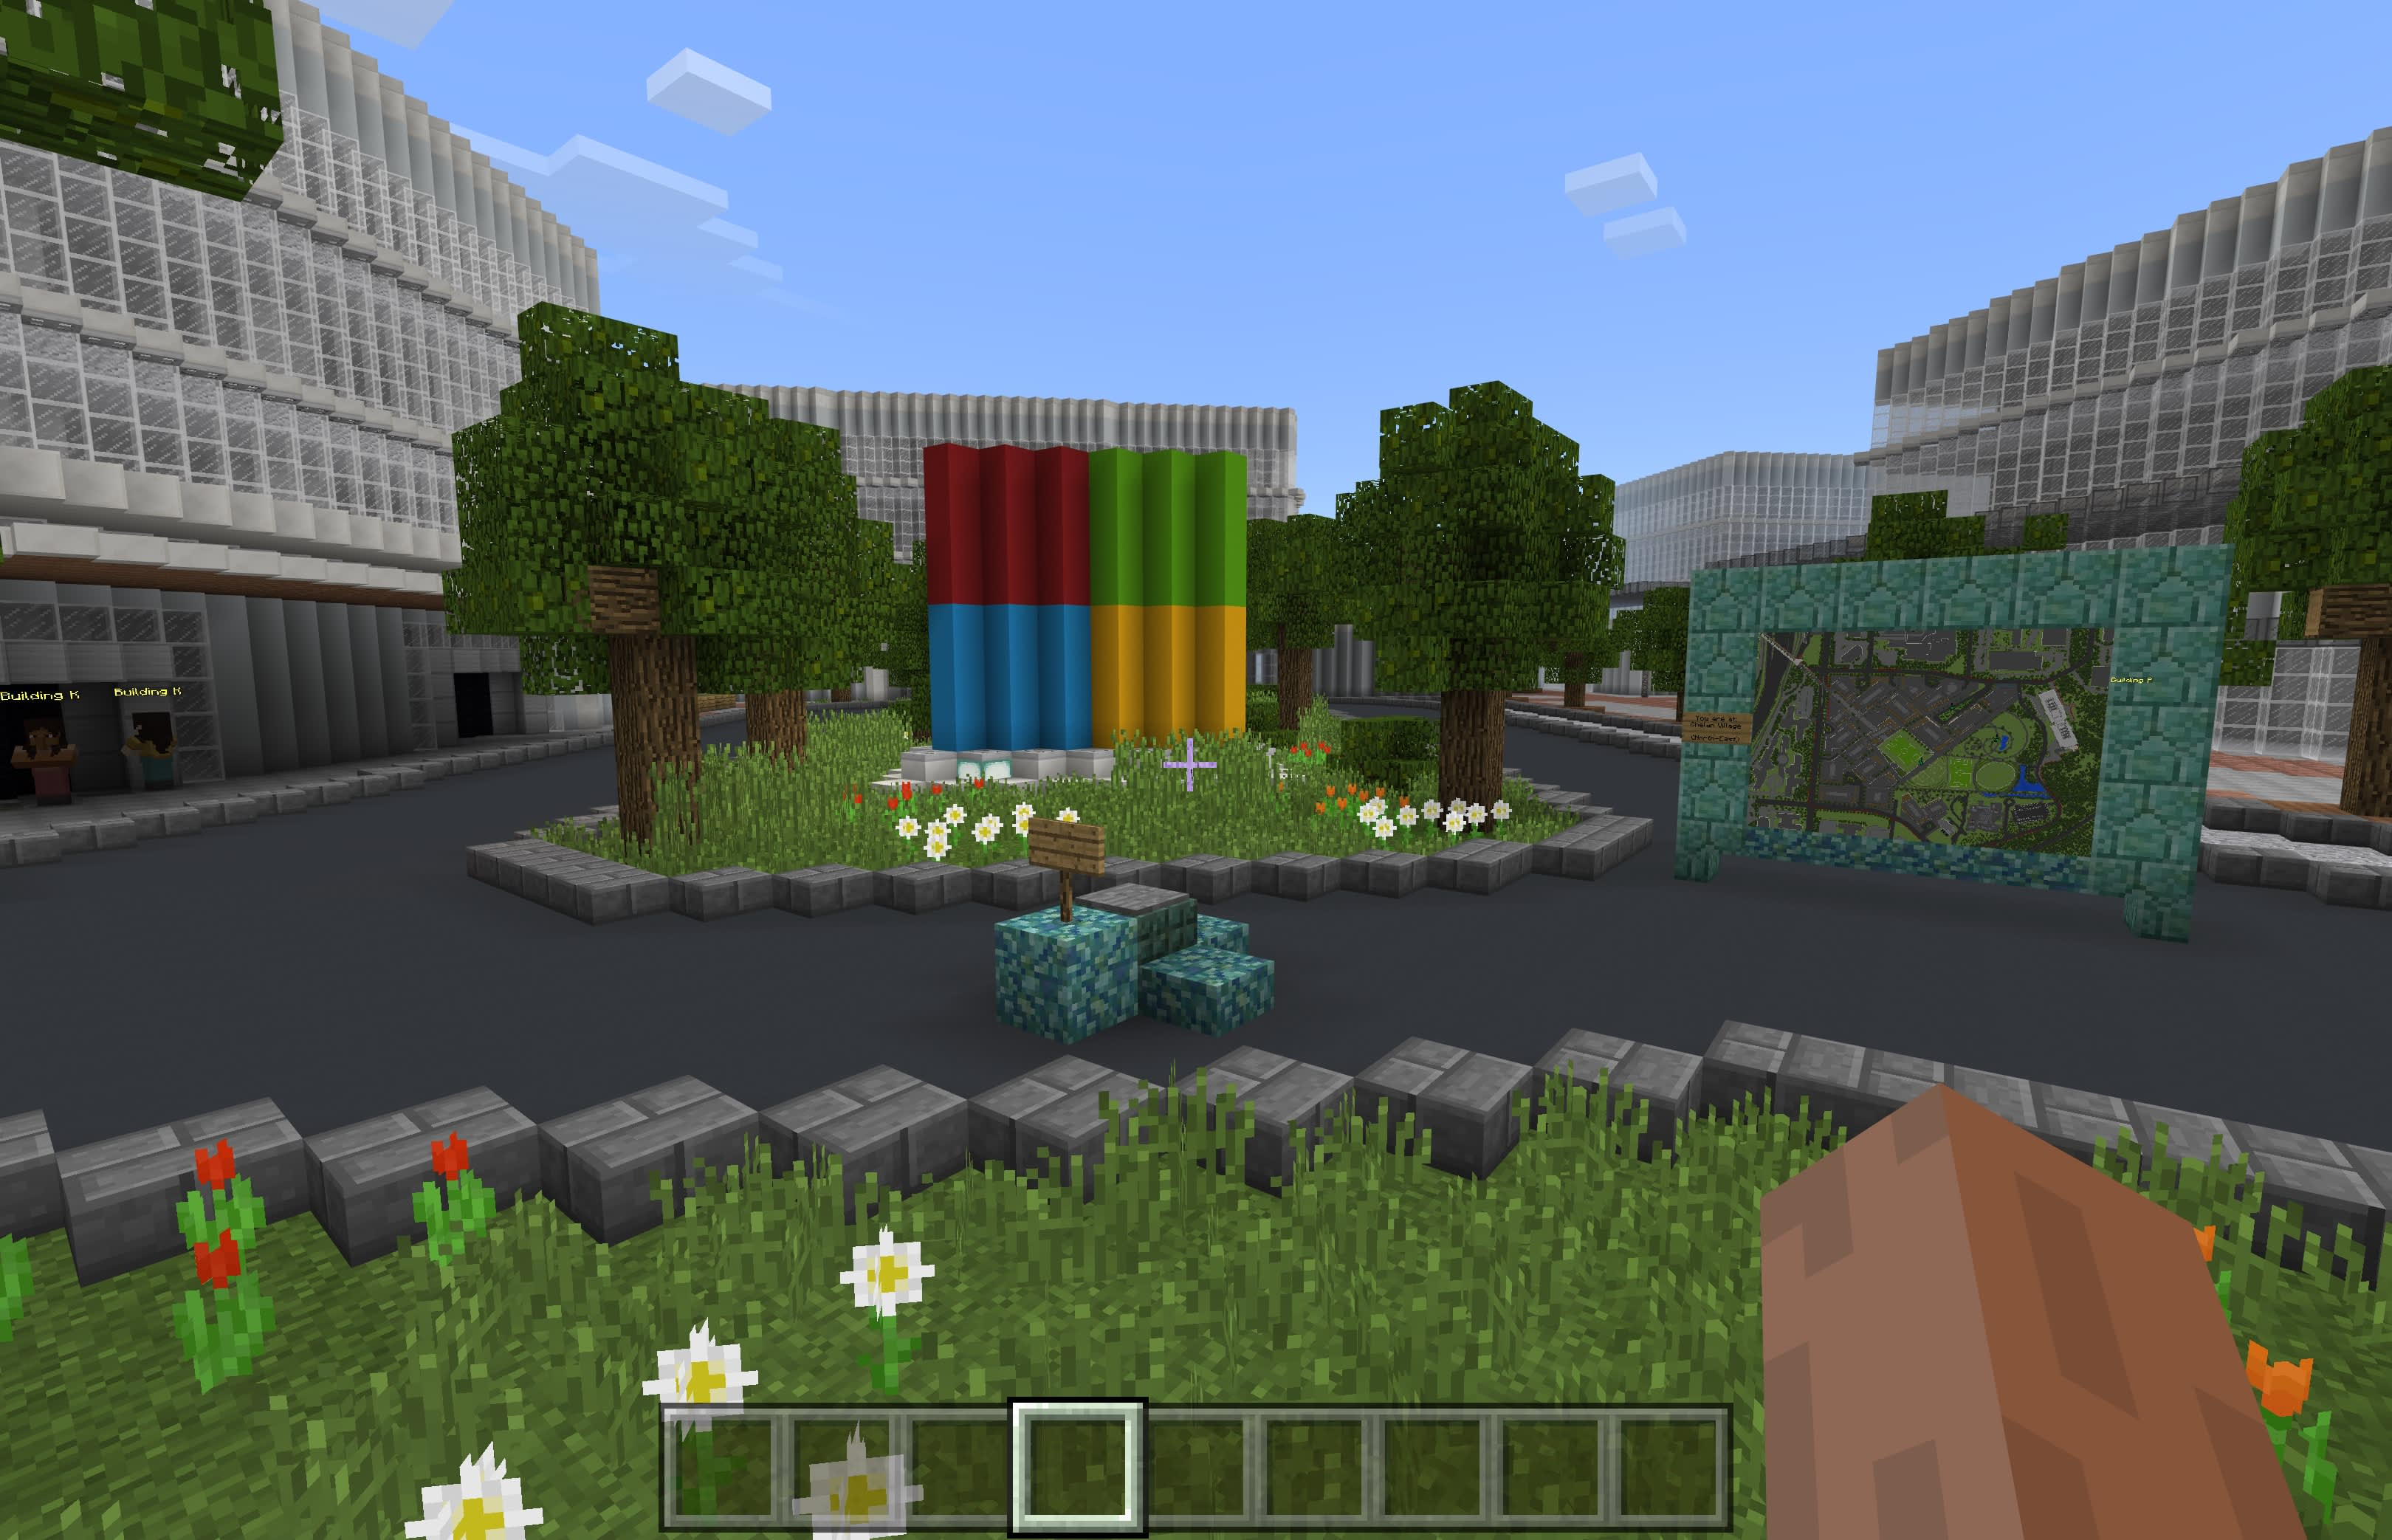 Microsoft Has A Version Of Its New Campus In Minecraft